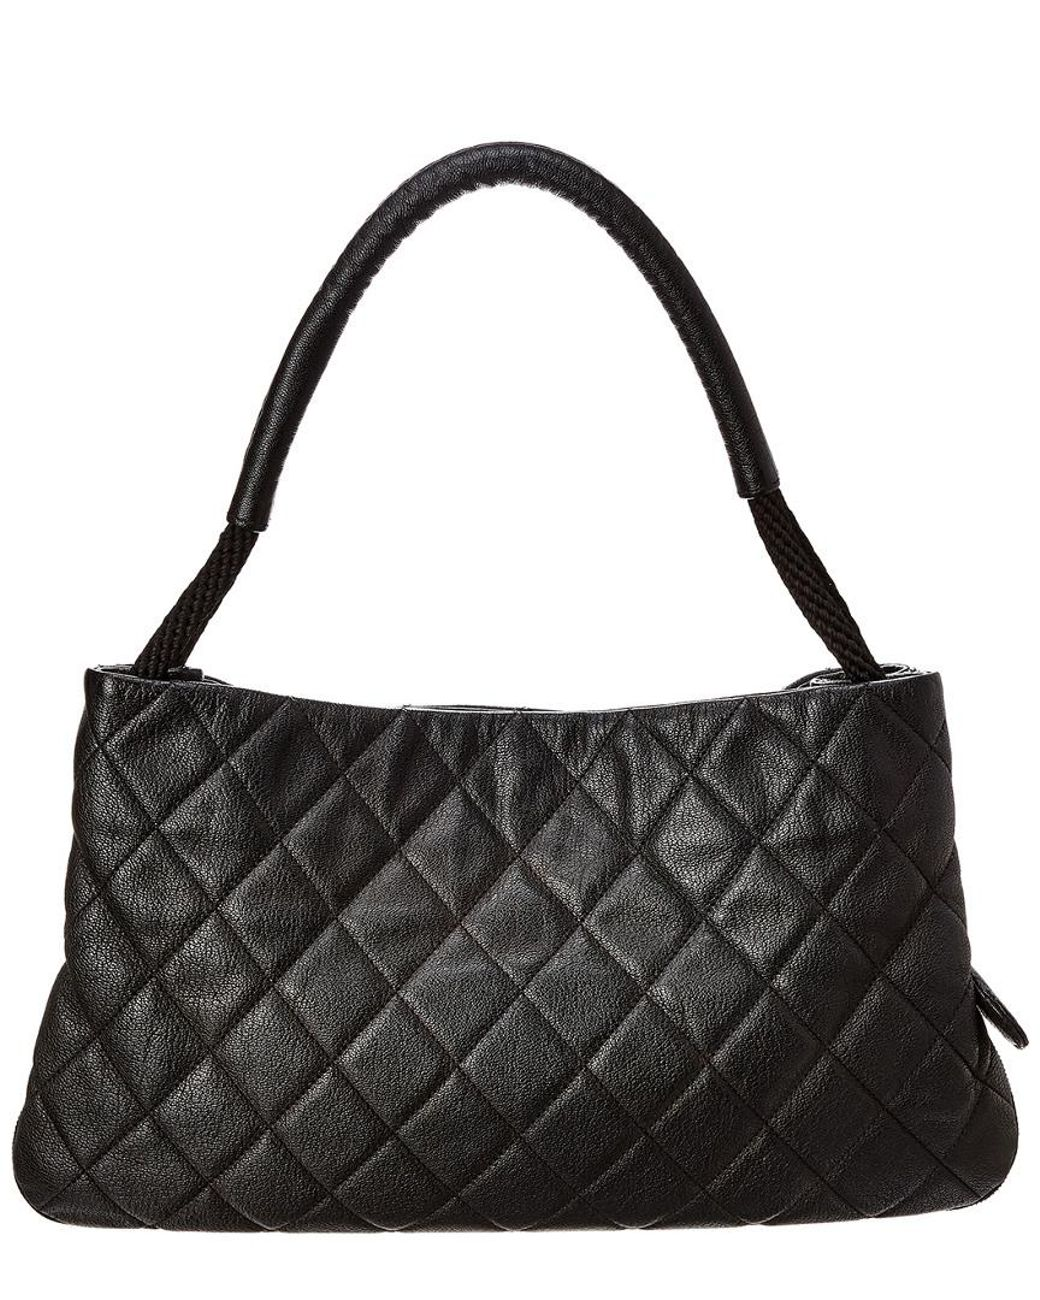 d8ed3ecacaeac7 Lyst - Chanel Black Quilted Soft Caviar Leather Shoulder Bag in Black